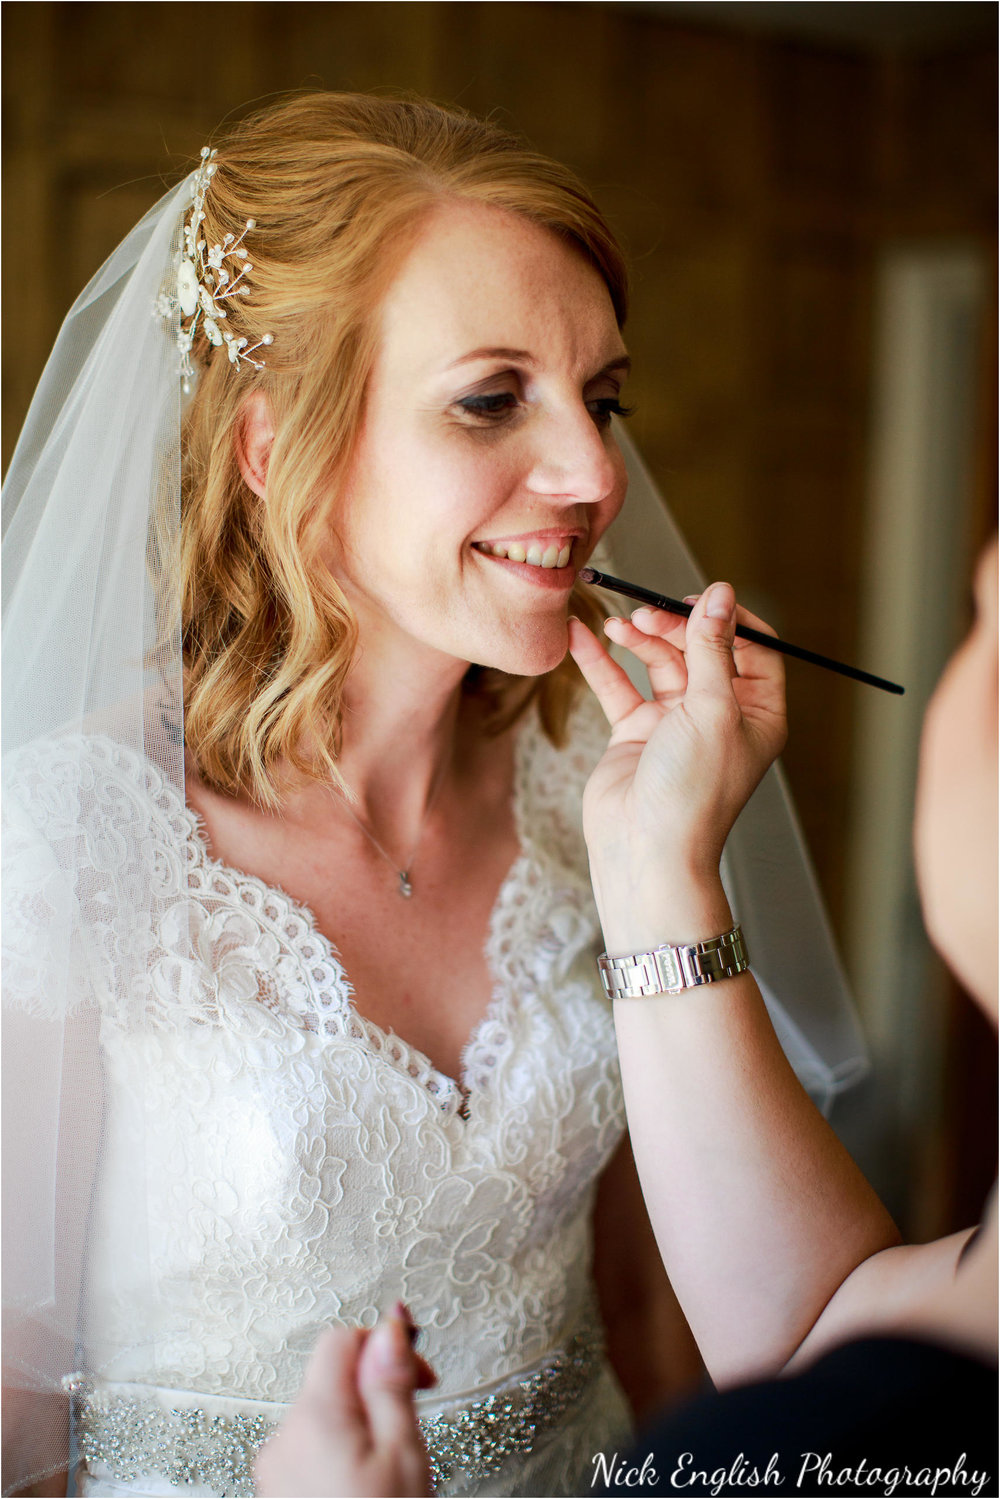 Alison James Wedding Photographs at Eaves Hall West Bradford 64jpg.jpeg